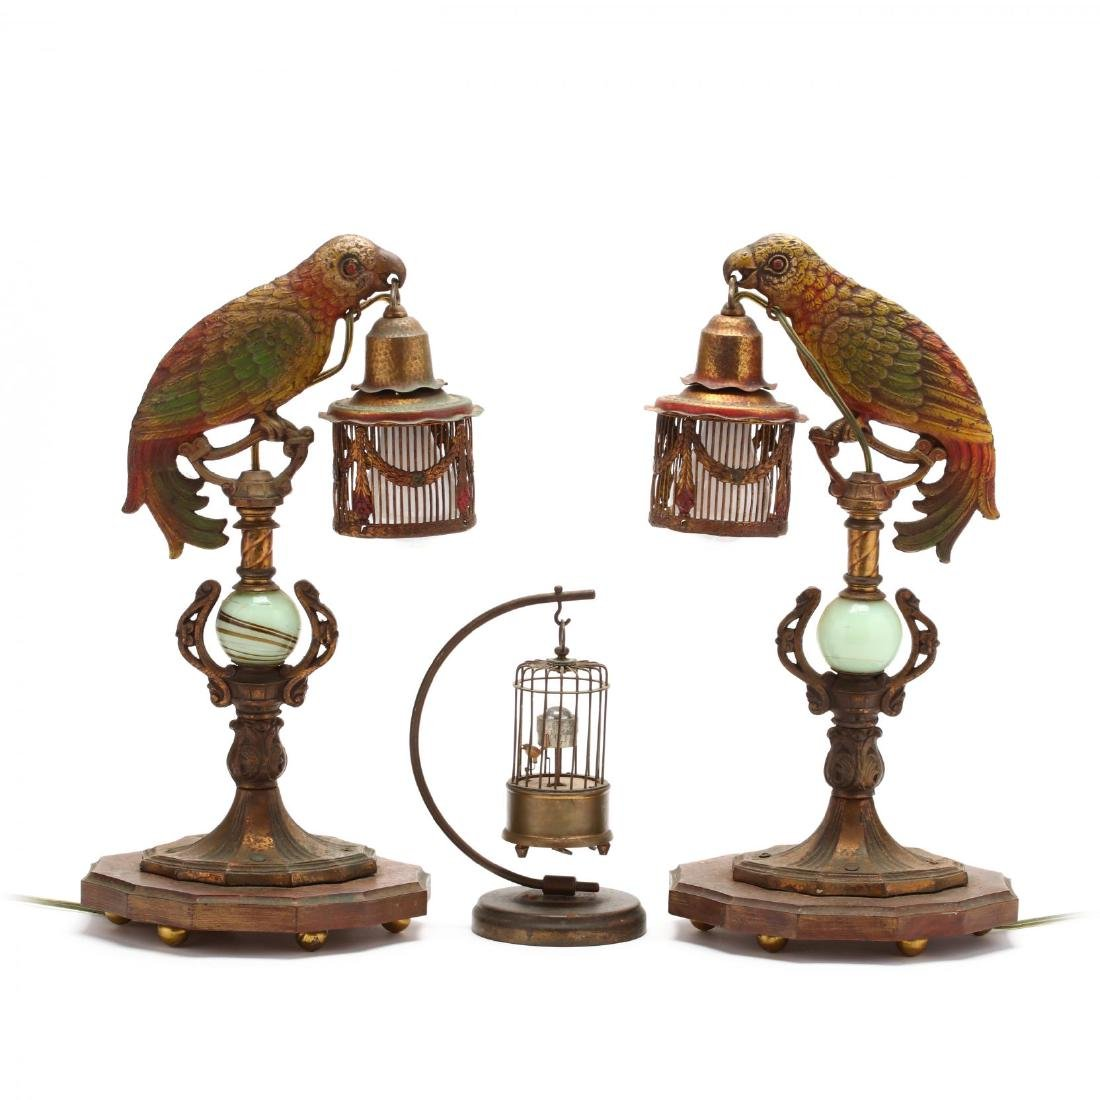 Pair of Art Deco Parrot Boudoir Lamps and an Automaton